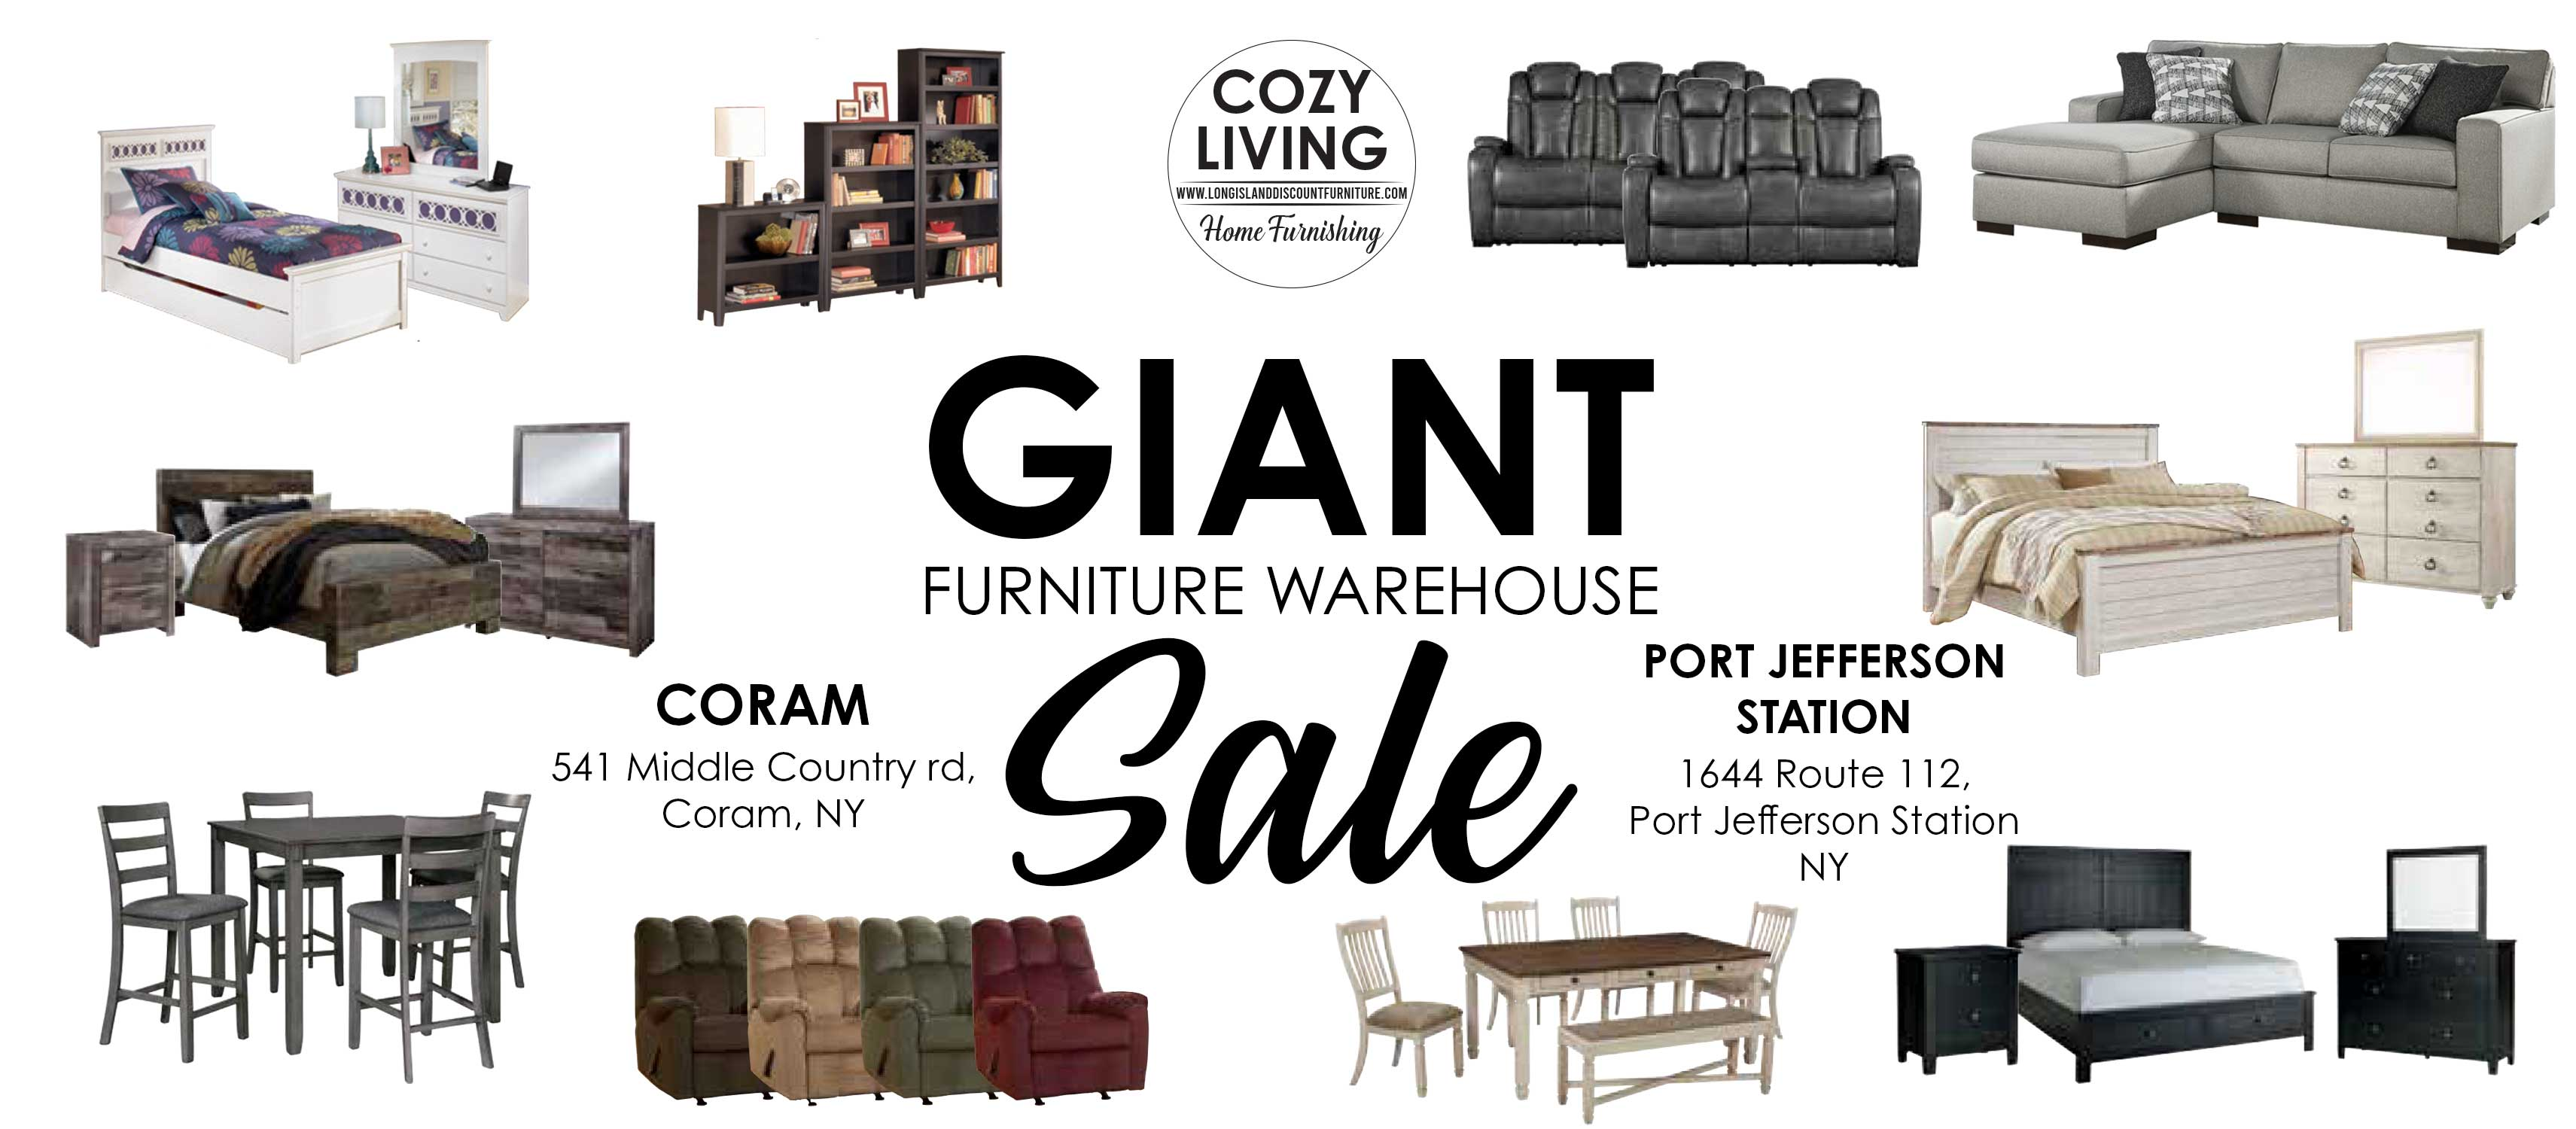 Giant Furniture Warehouse Sale